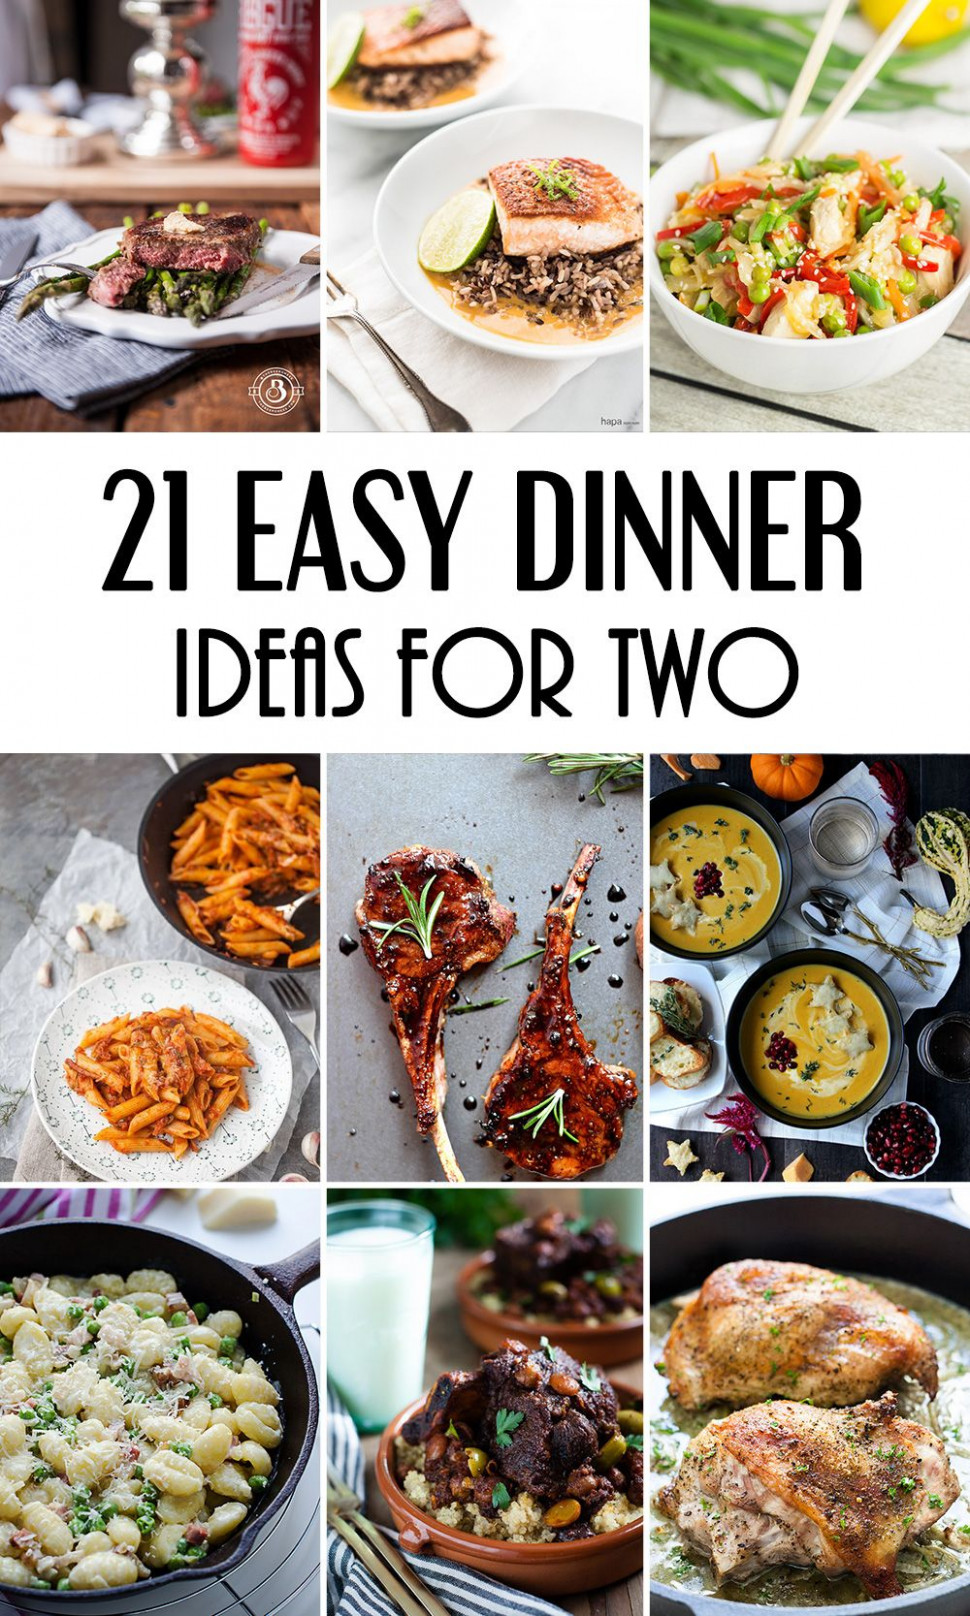 10 Easy Dinner Ideas For Two That Will Impress Your Loved ..